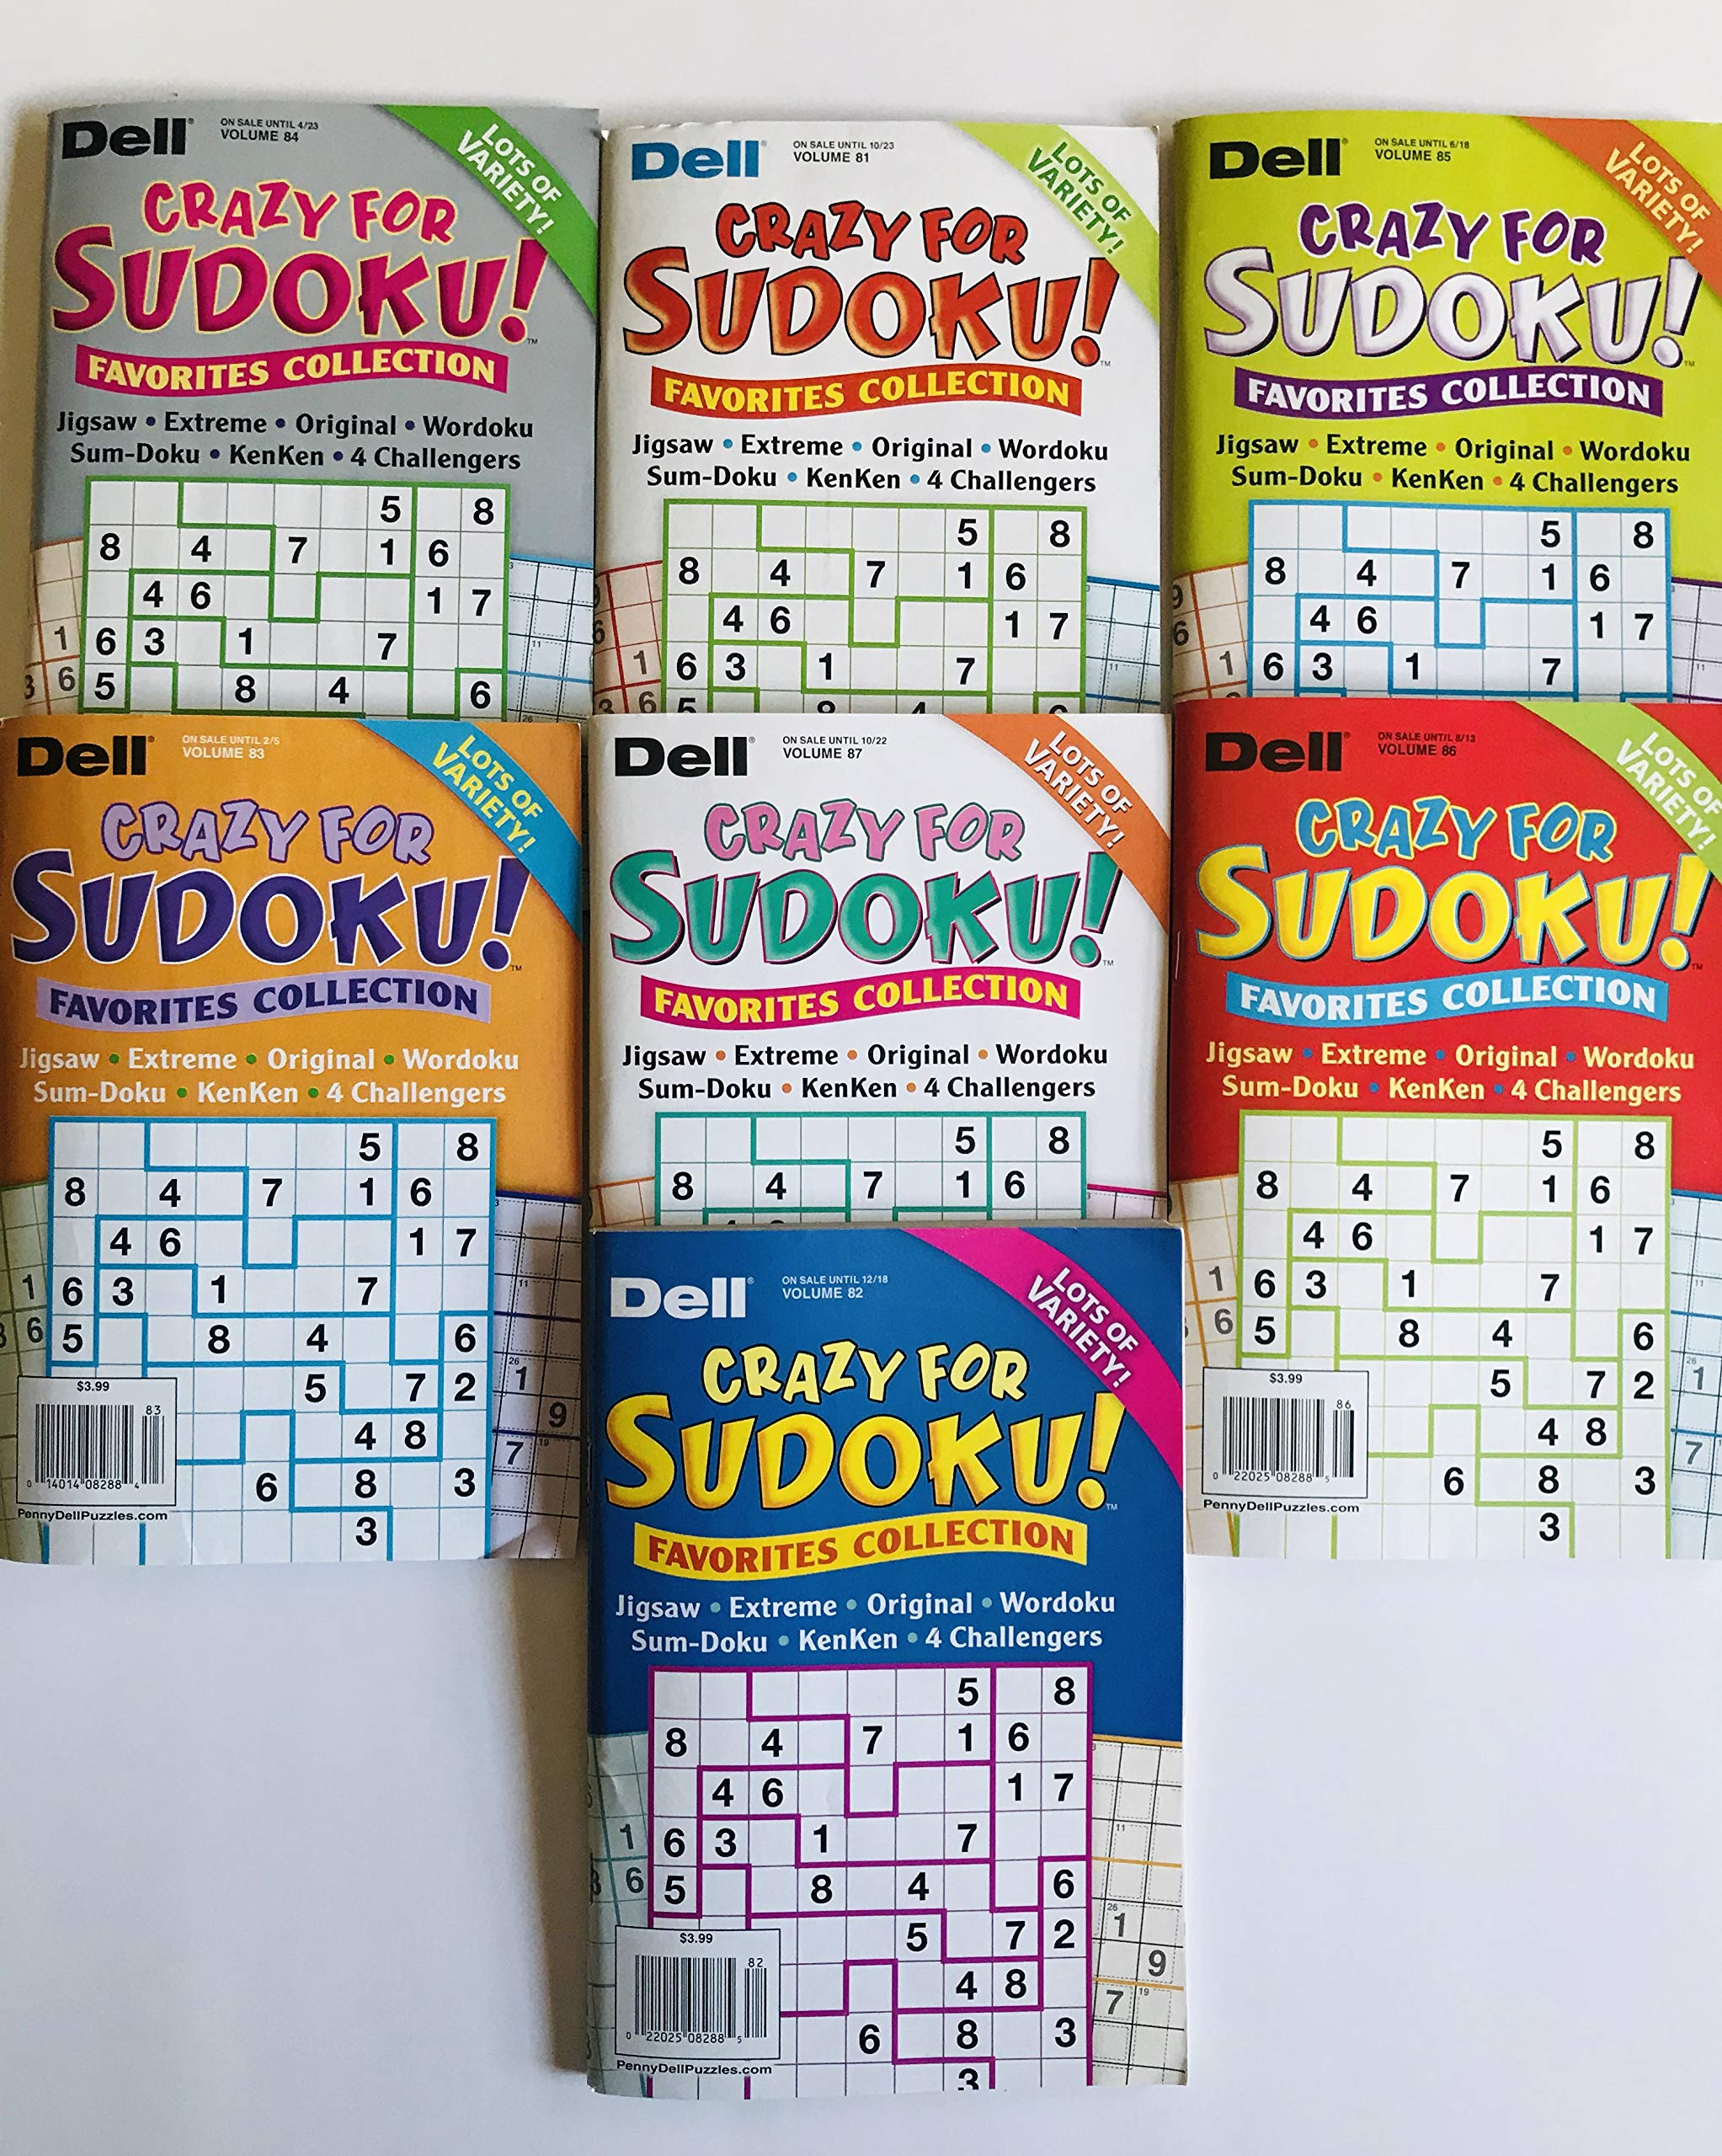 Lot of 7 CRAZY FOR SUDOKU FAVORITES COLLECTION from the Dell Penny Press Puzzles Volume number 81, 82, 83, 84, 85, 86 and 87 by Penny Dell